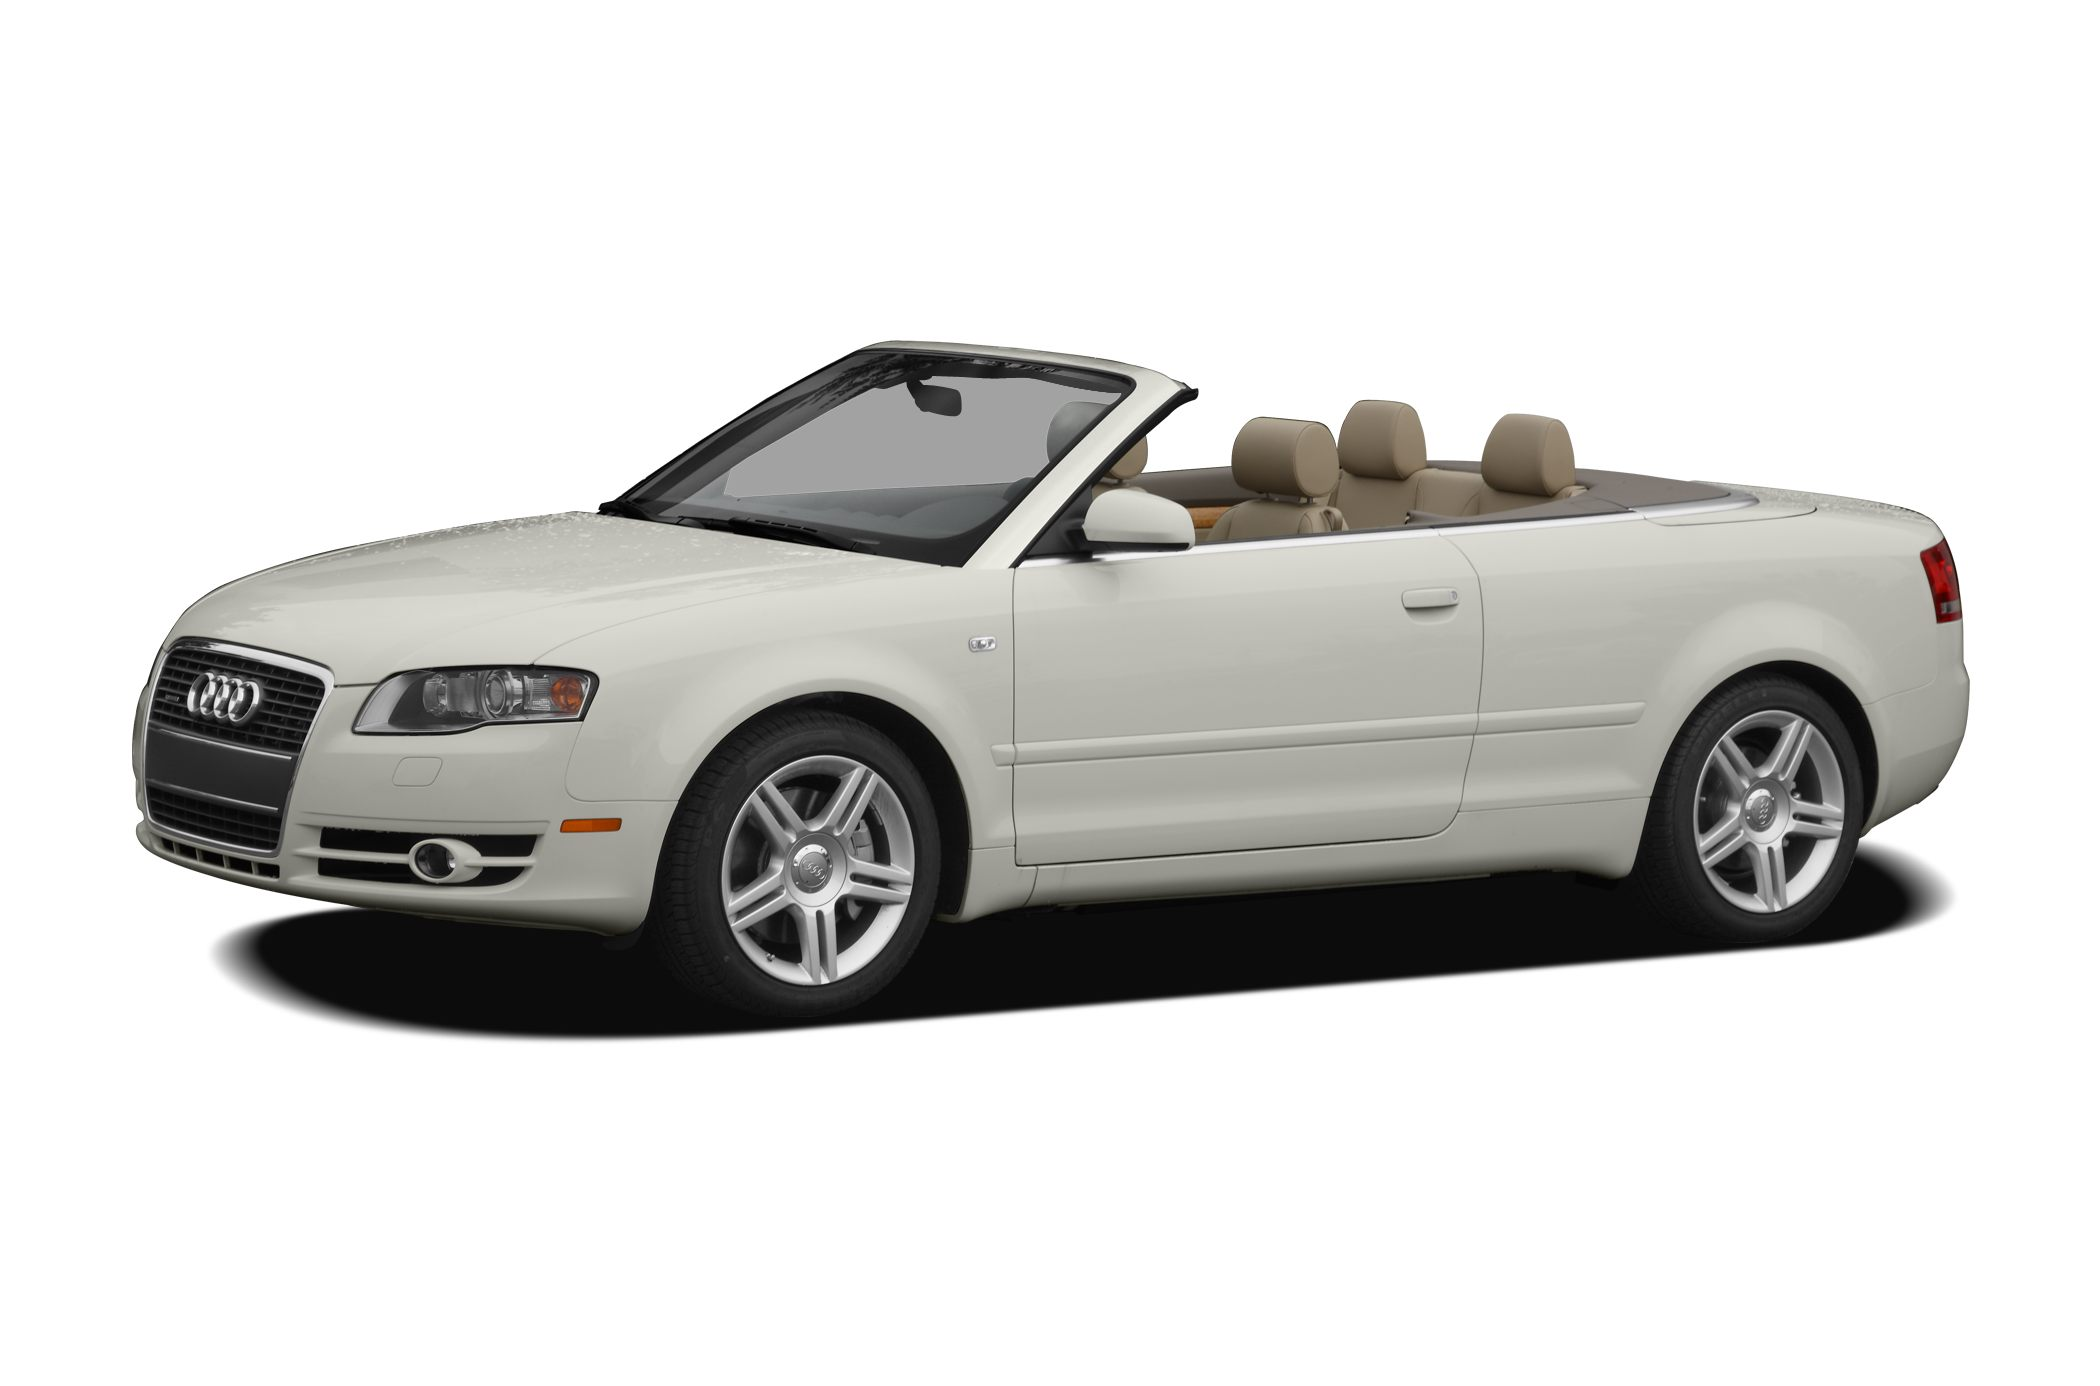 2008 Audi A4 2.0T Cabriolet Quattro Convertible for sale in Palm Desert for $12,999 with 96,265 miles.